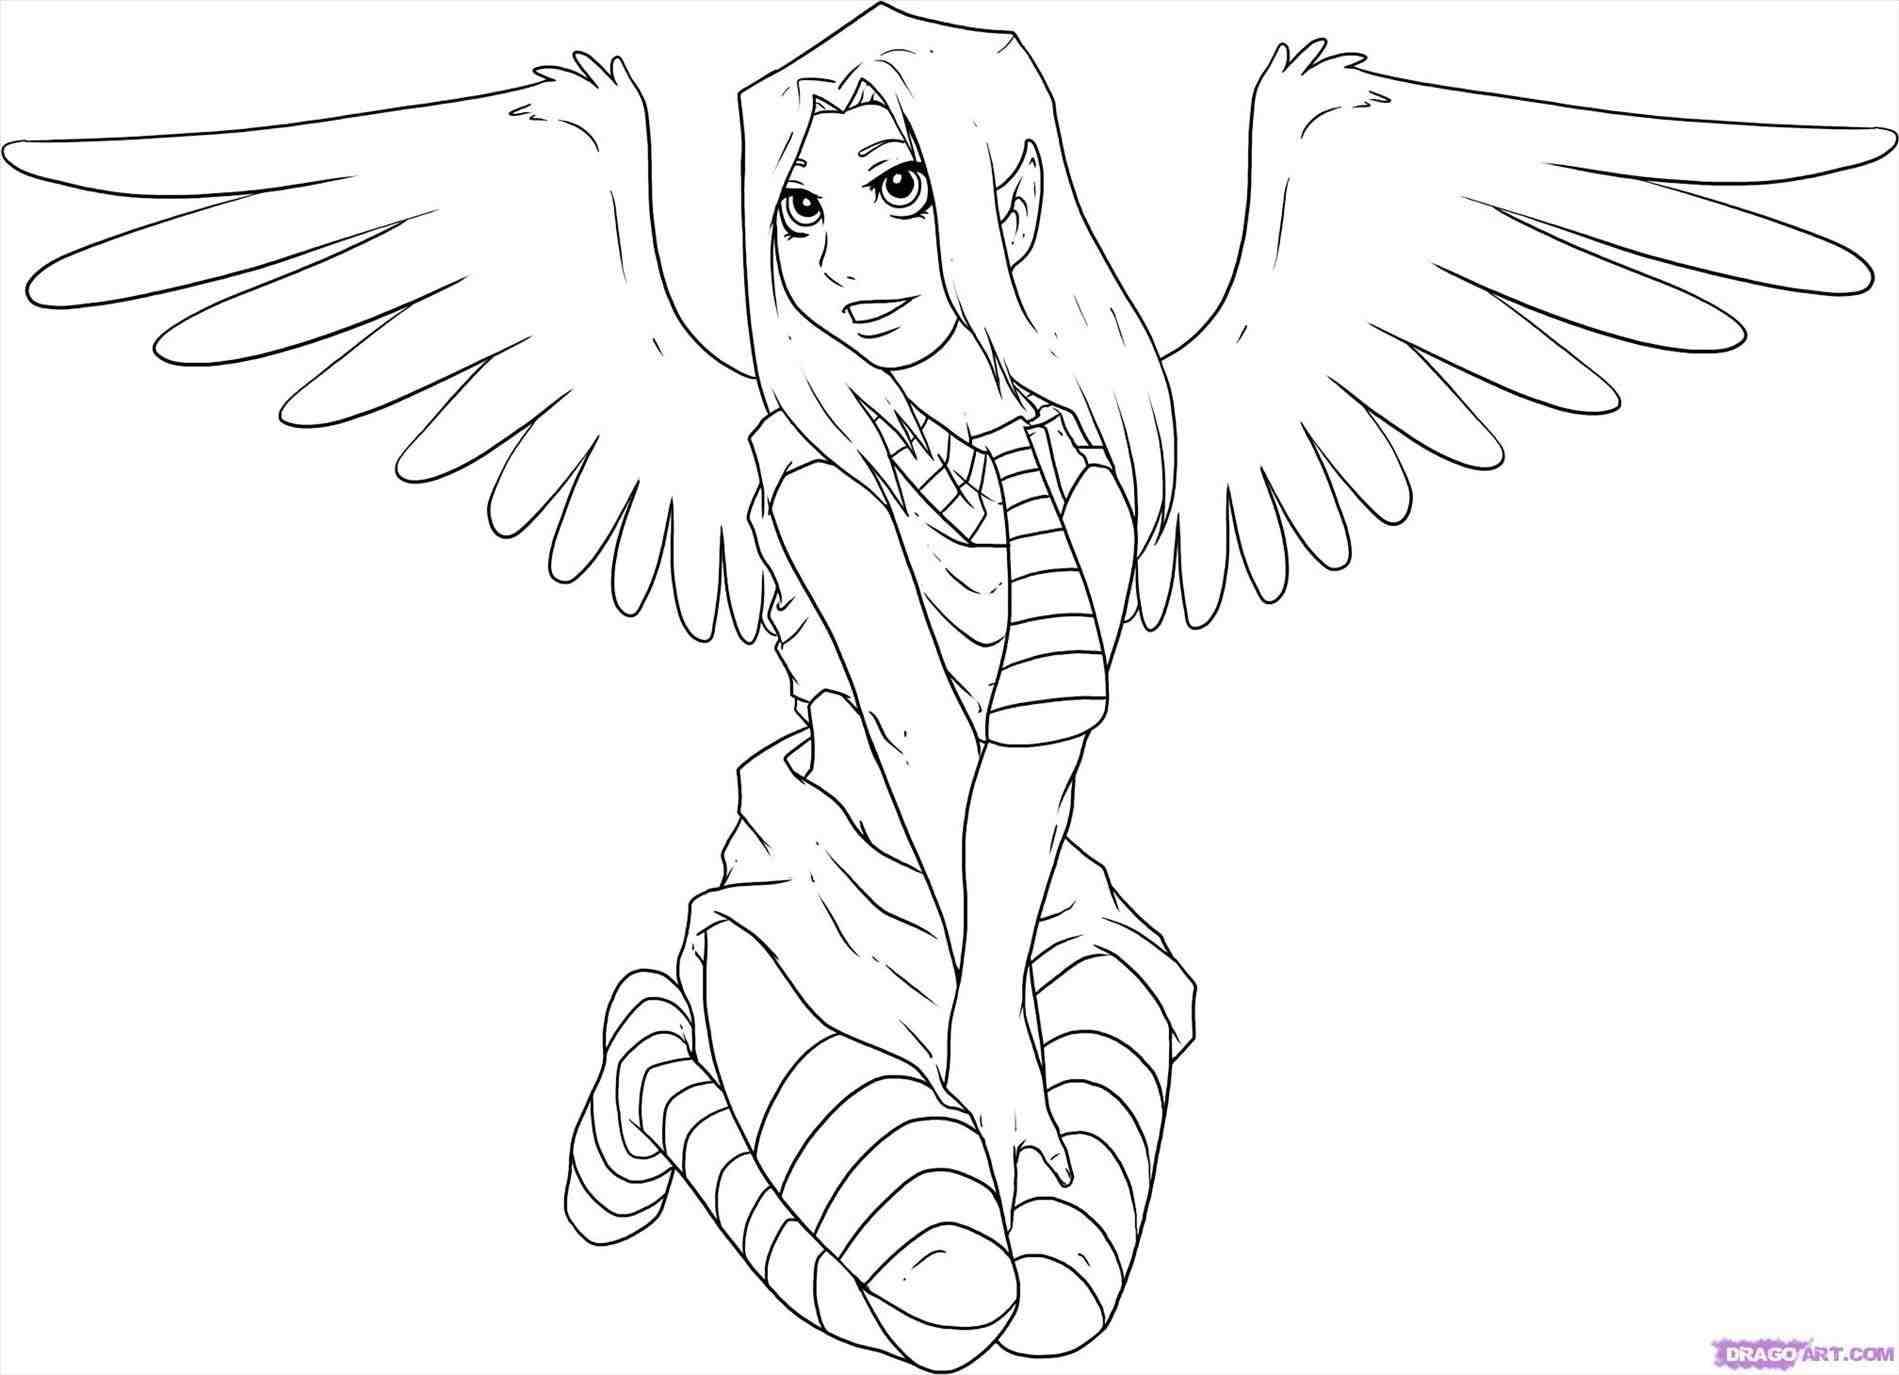 people coloring pages - christmas angel drawings